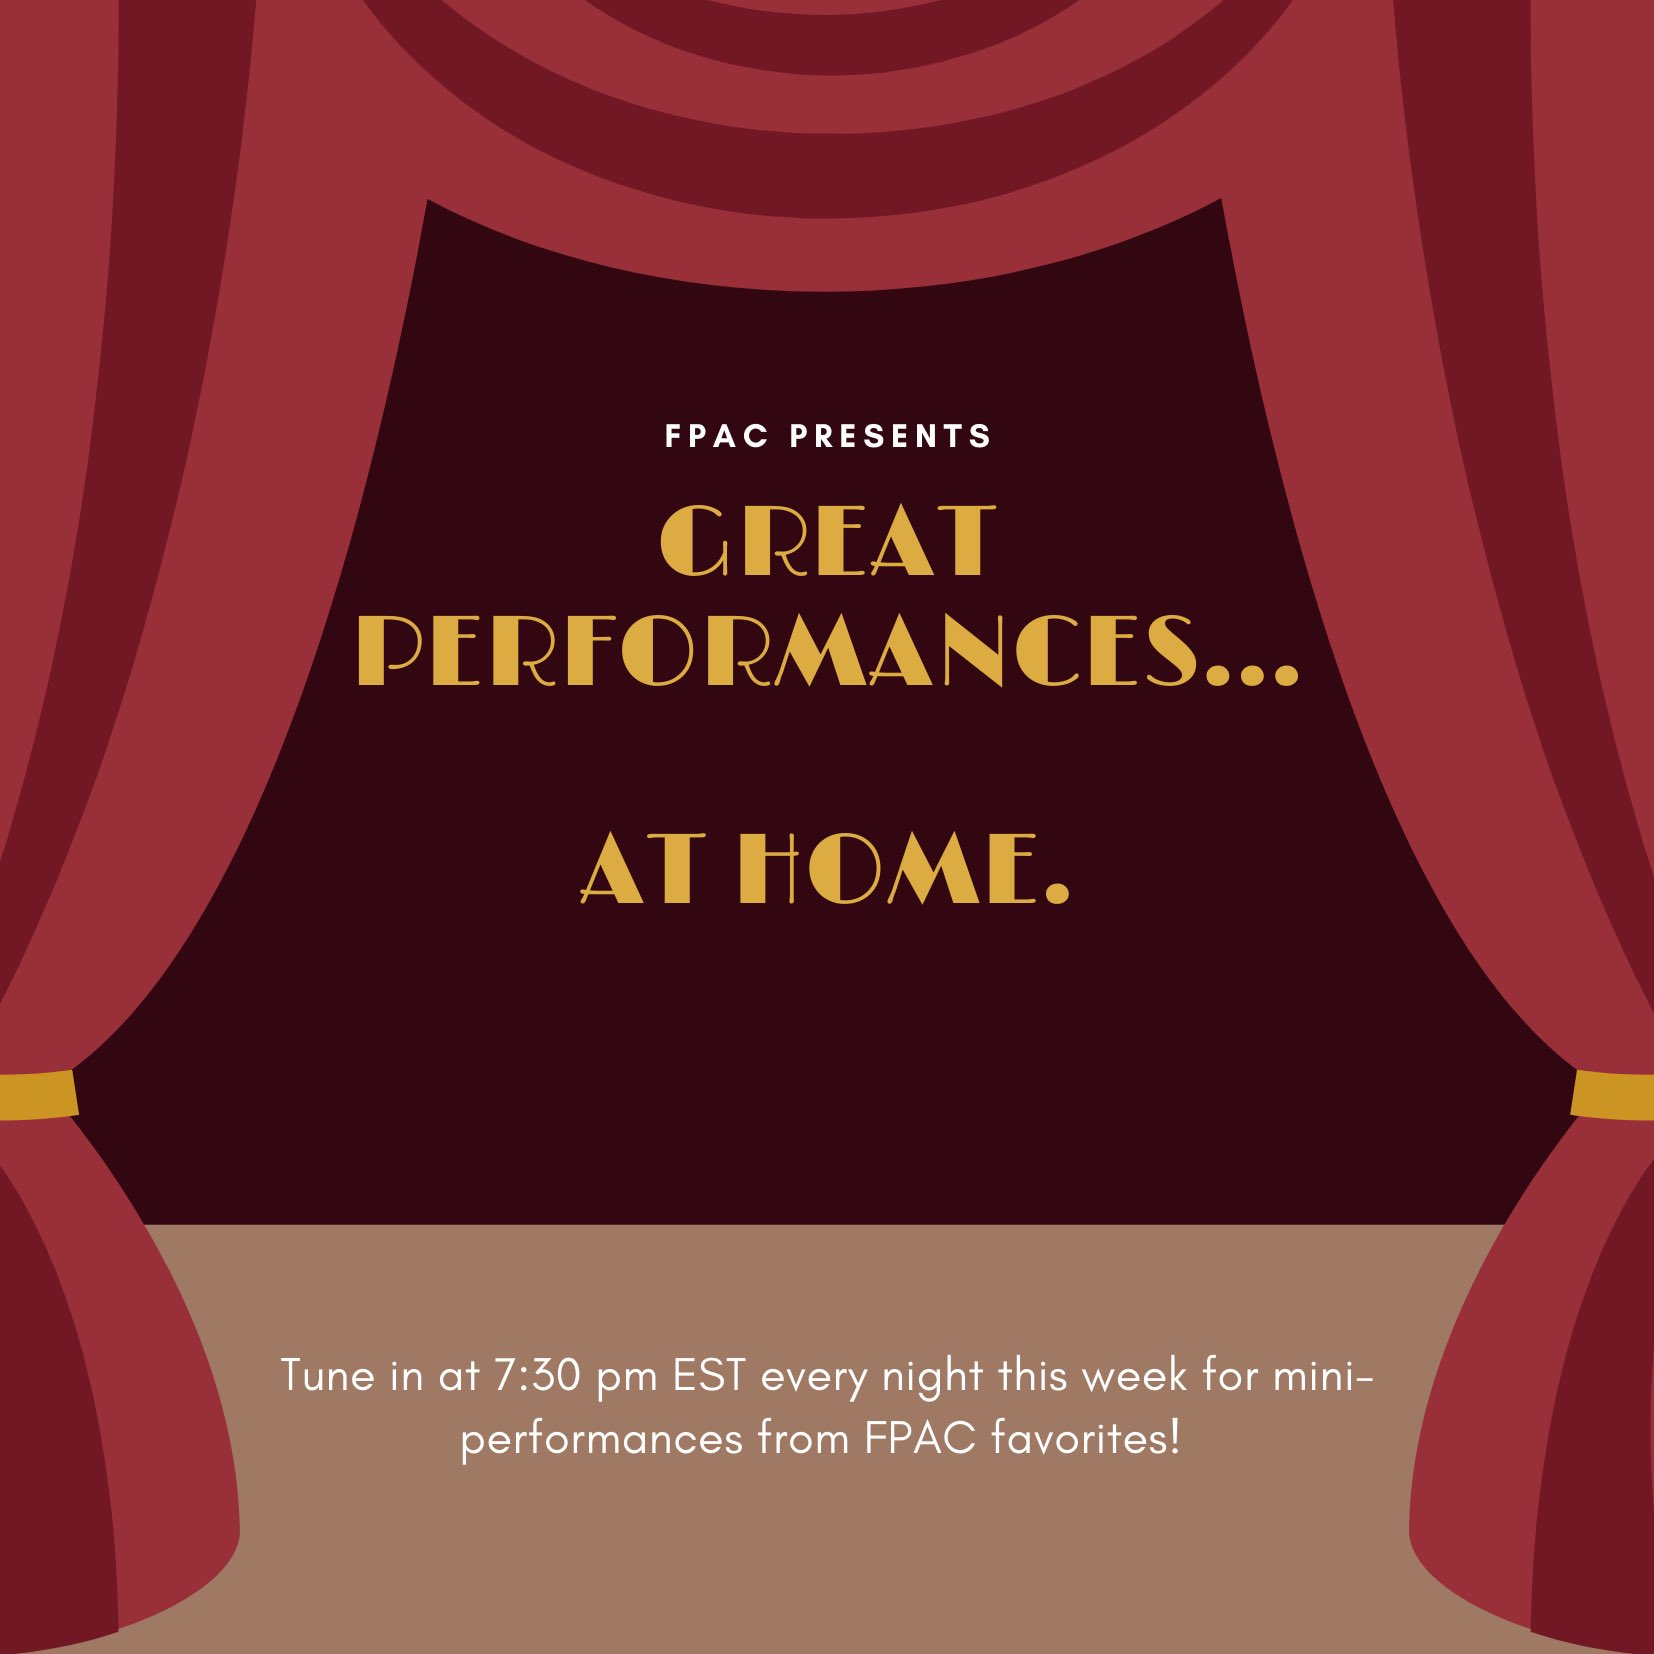 FPAC presents Great Performances...At Home!